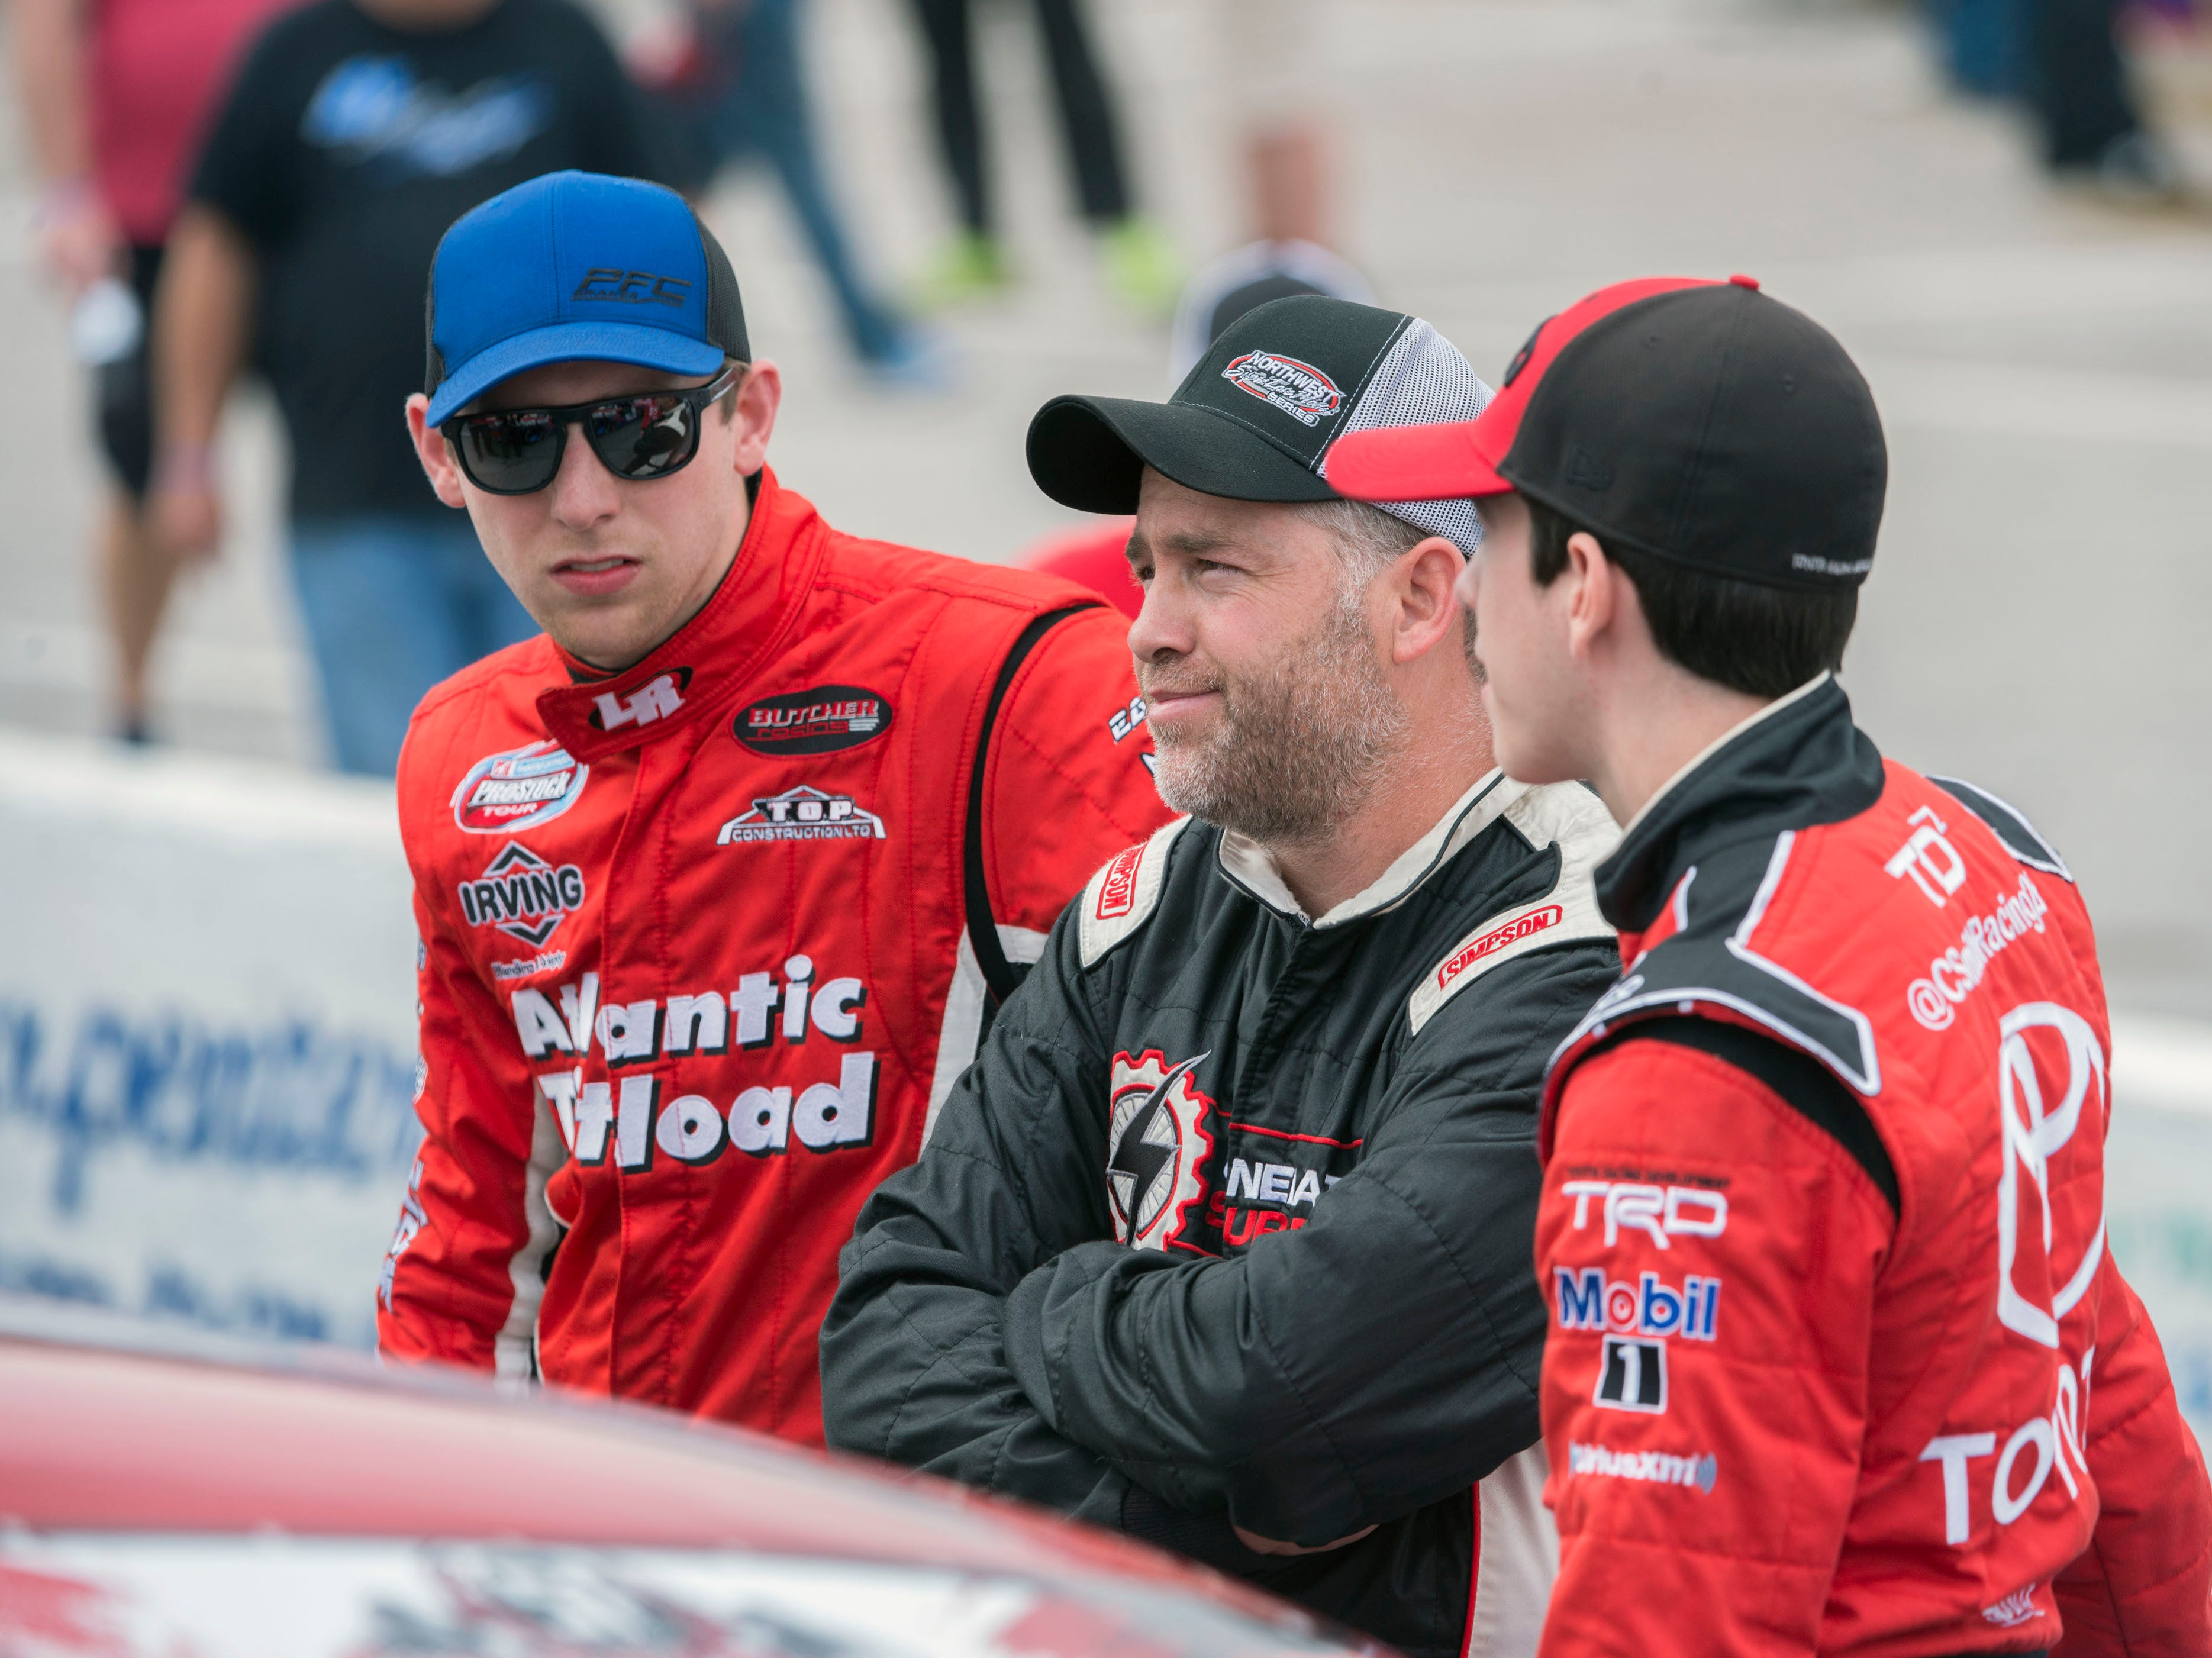 Drivers chat before the race Sunday, December 2, 2018 during the 51st annual Snowball Derby at Five Flags Speedway.